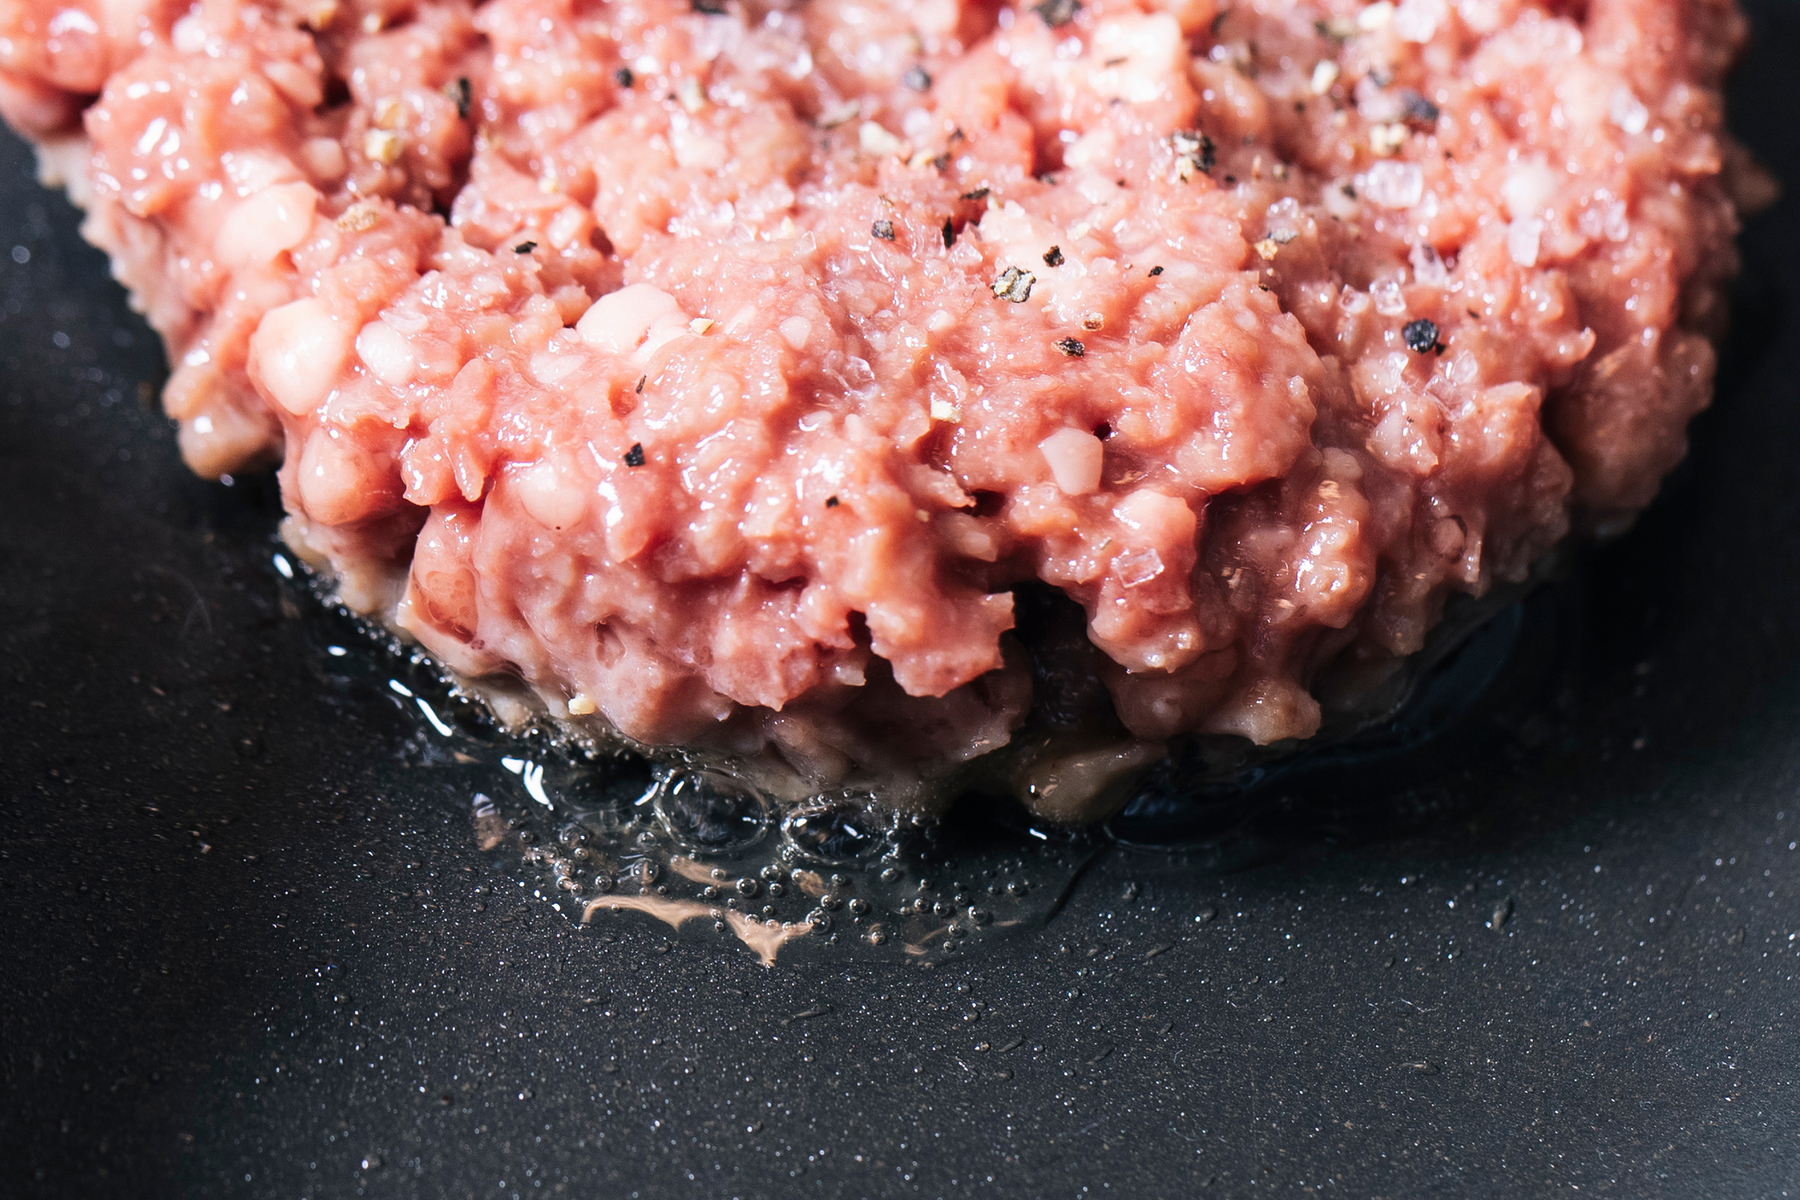 Impossible burger patties are being cooked on a pan at the test kitchen inside Impossible Foods headquarters in Redwood City, Calif. on Thursday, June 20, 2019.